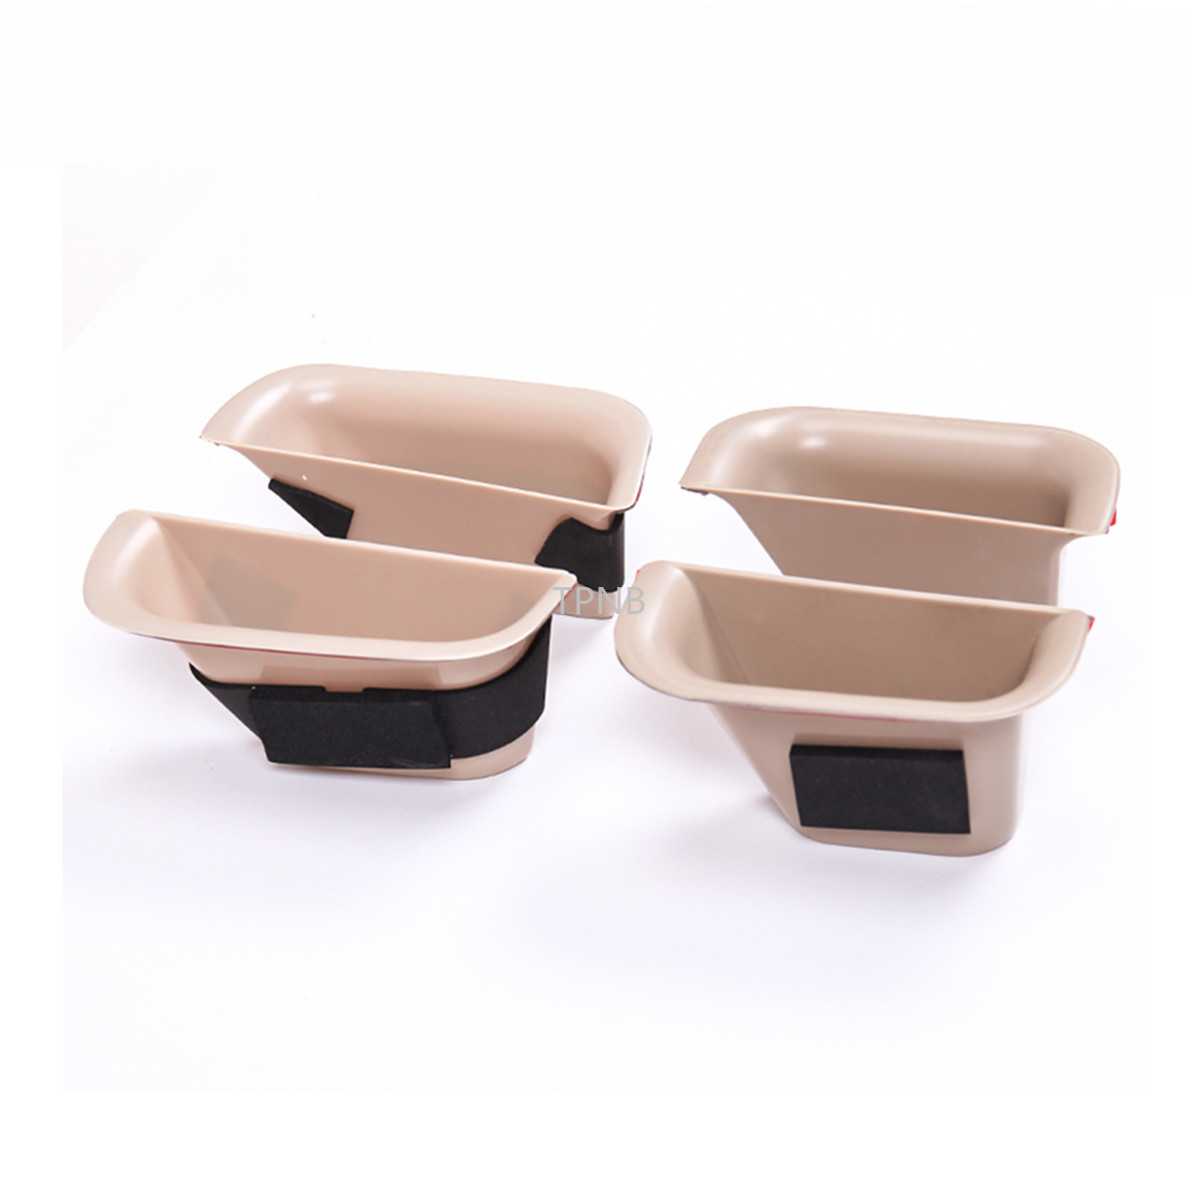 Image 2 - 4PCS/set Car Door Storage Box for Toyota Land Cruiser Prado 120 2003 2004 2005 2006 2007 2008 2009 Accessories-in Chromium Styling from Automobiles & Motorcycles